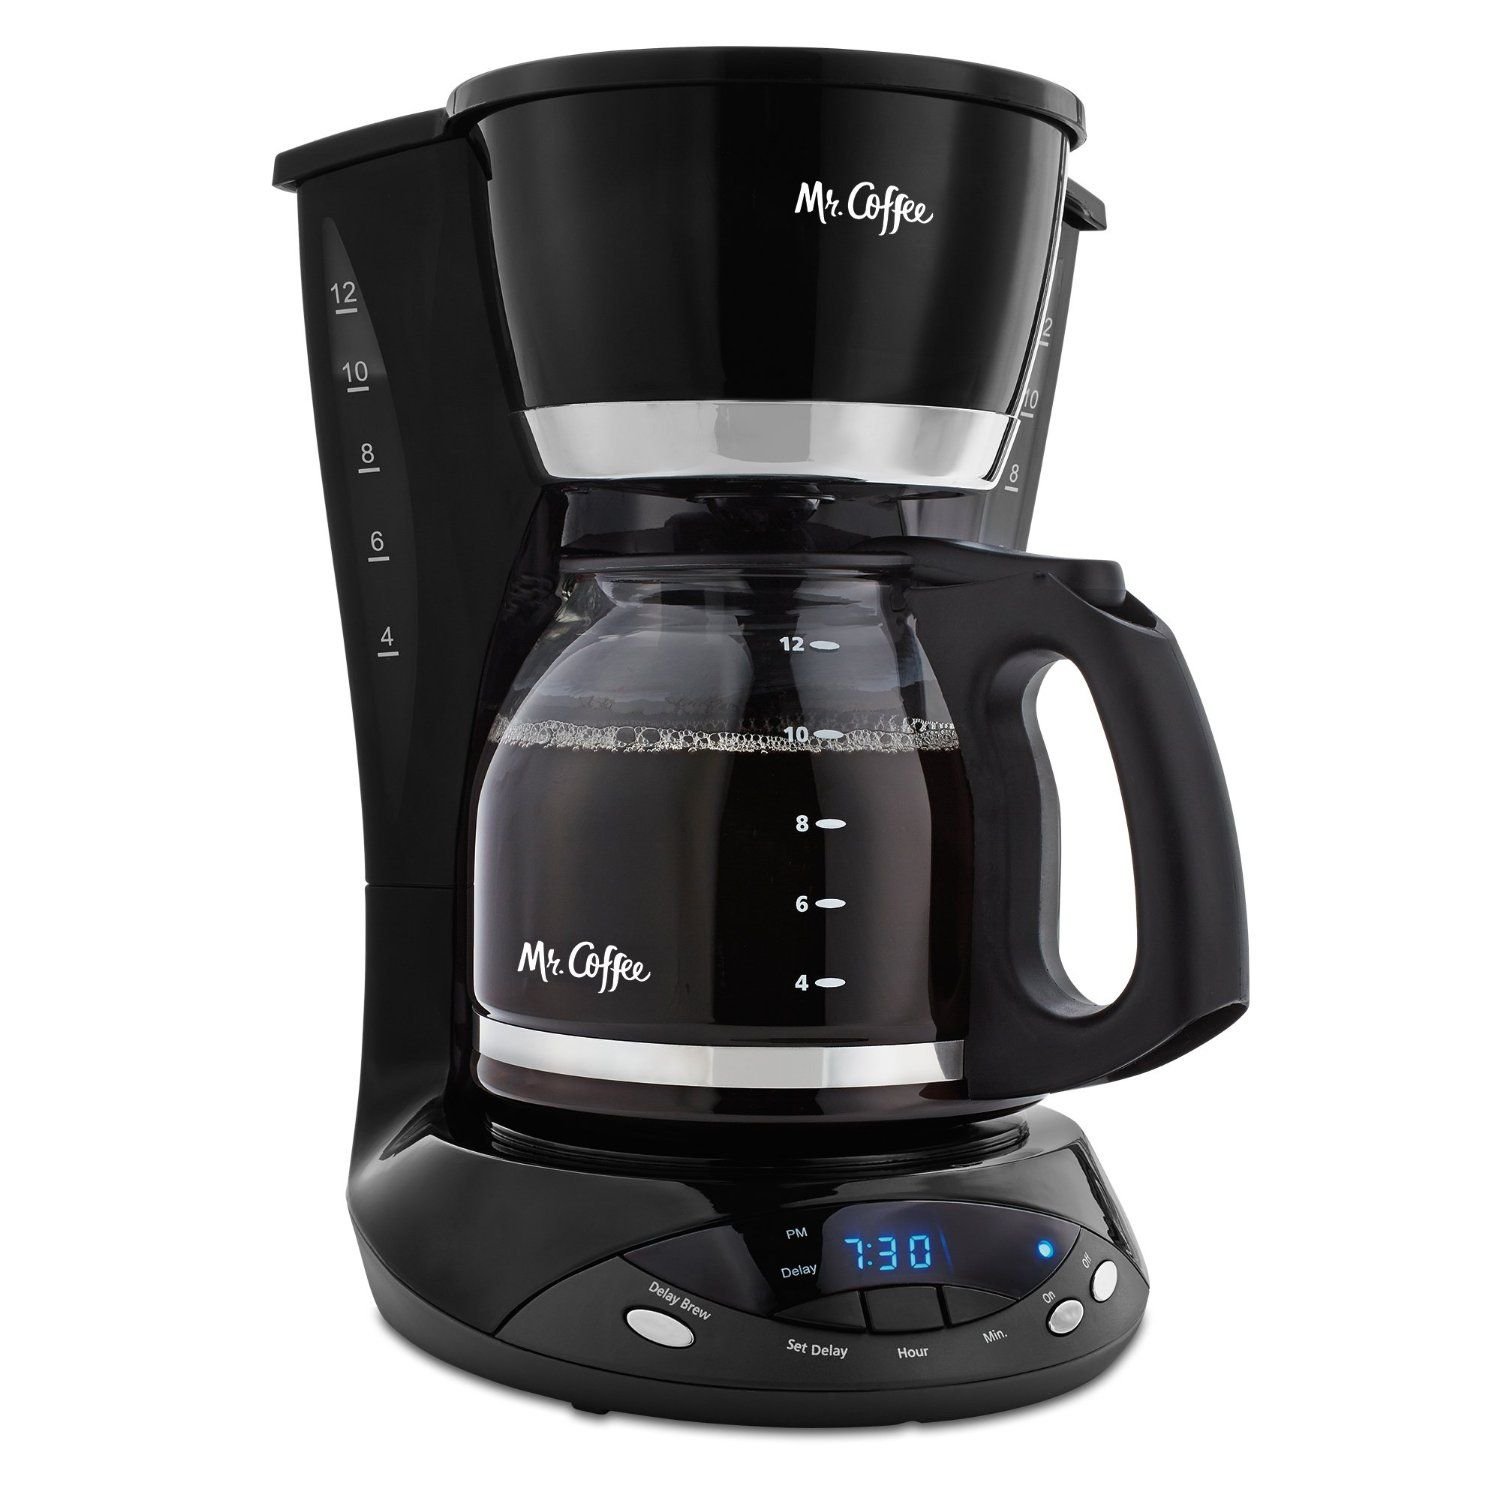 Mr Coffee DWX23 12 Cup Programmable Coffeemaker Black Tried it